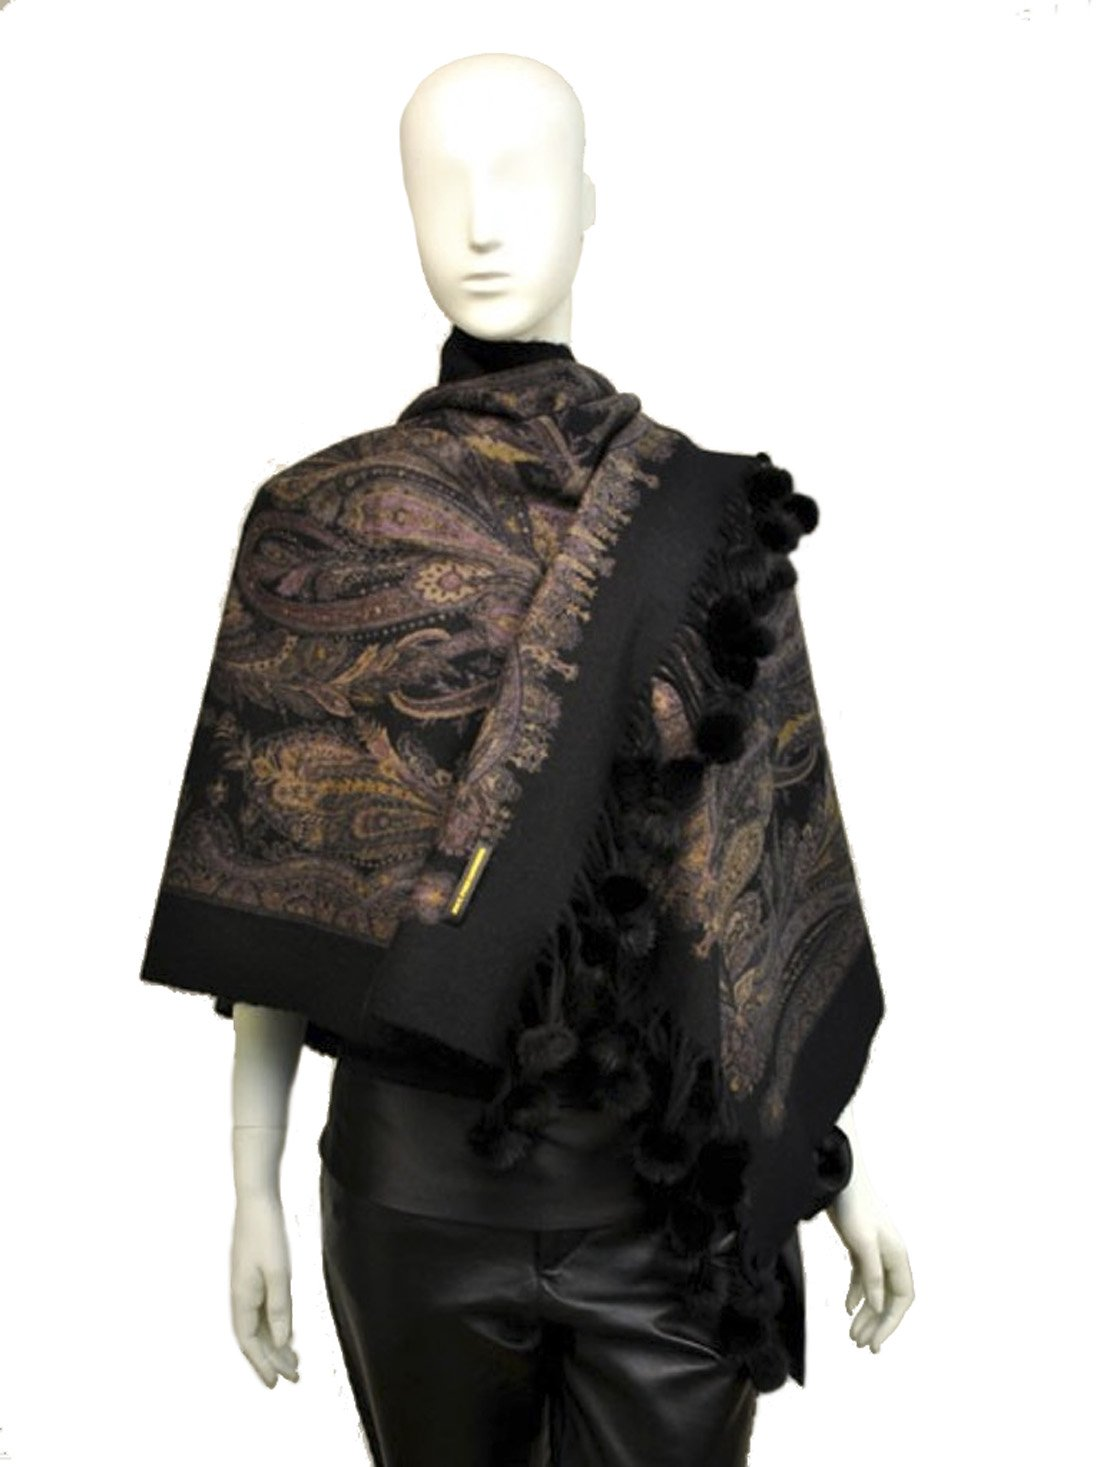 Scarves, Cashmere scarf, shawl from Cashmere Pashmina Group (Cashmere reversible shawl with mink pom-poms - Black) (Black)